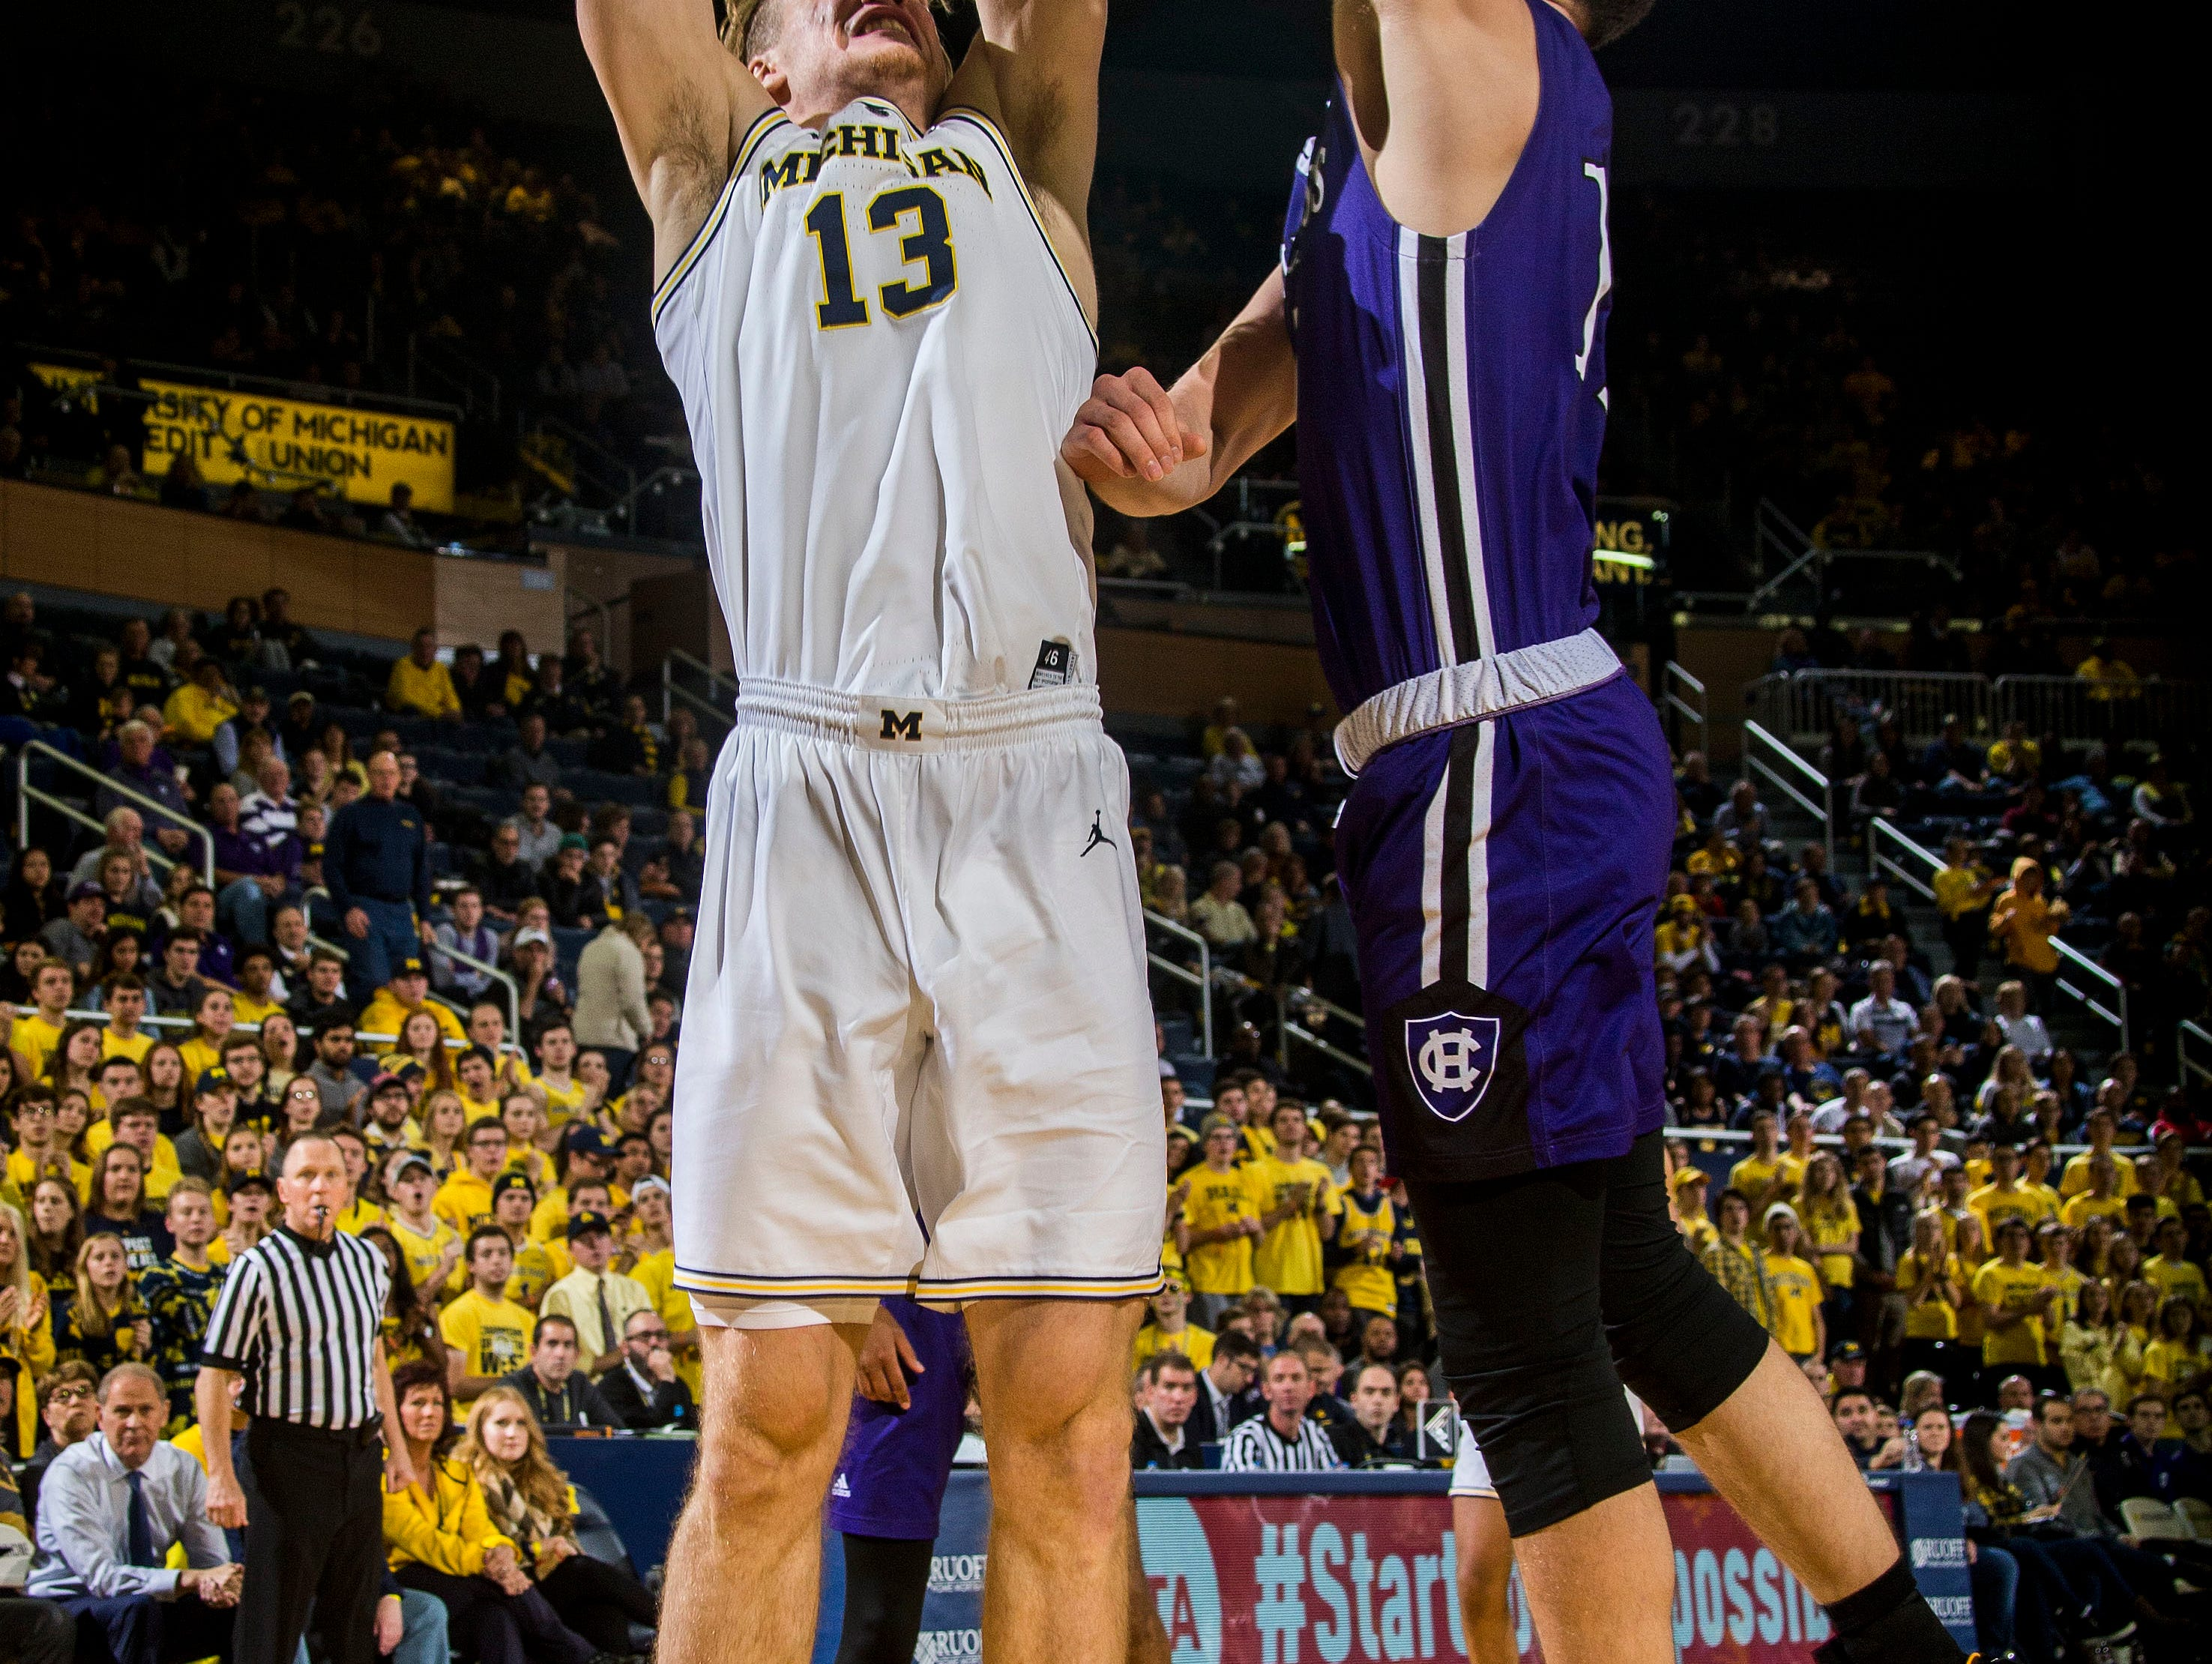 Michigan forward Ignas Brazdeikis (13) goes to the basket while defended by Holy Cross forward Matt Faw, right, in the second half of an NCAA college basketball game at Crisler Center in Ann Arbor, Mich., Saturday, Nov. 10, 2018. (AP Photo/Tony Ding)